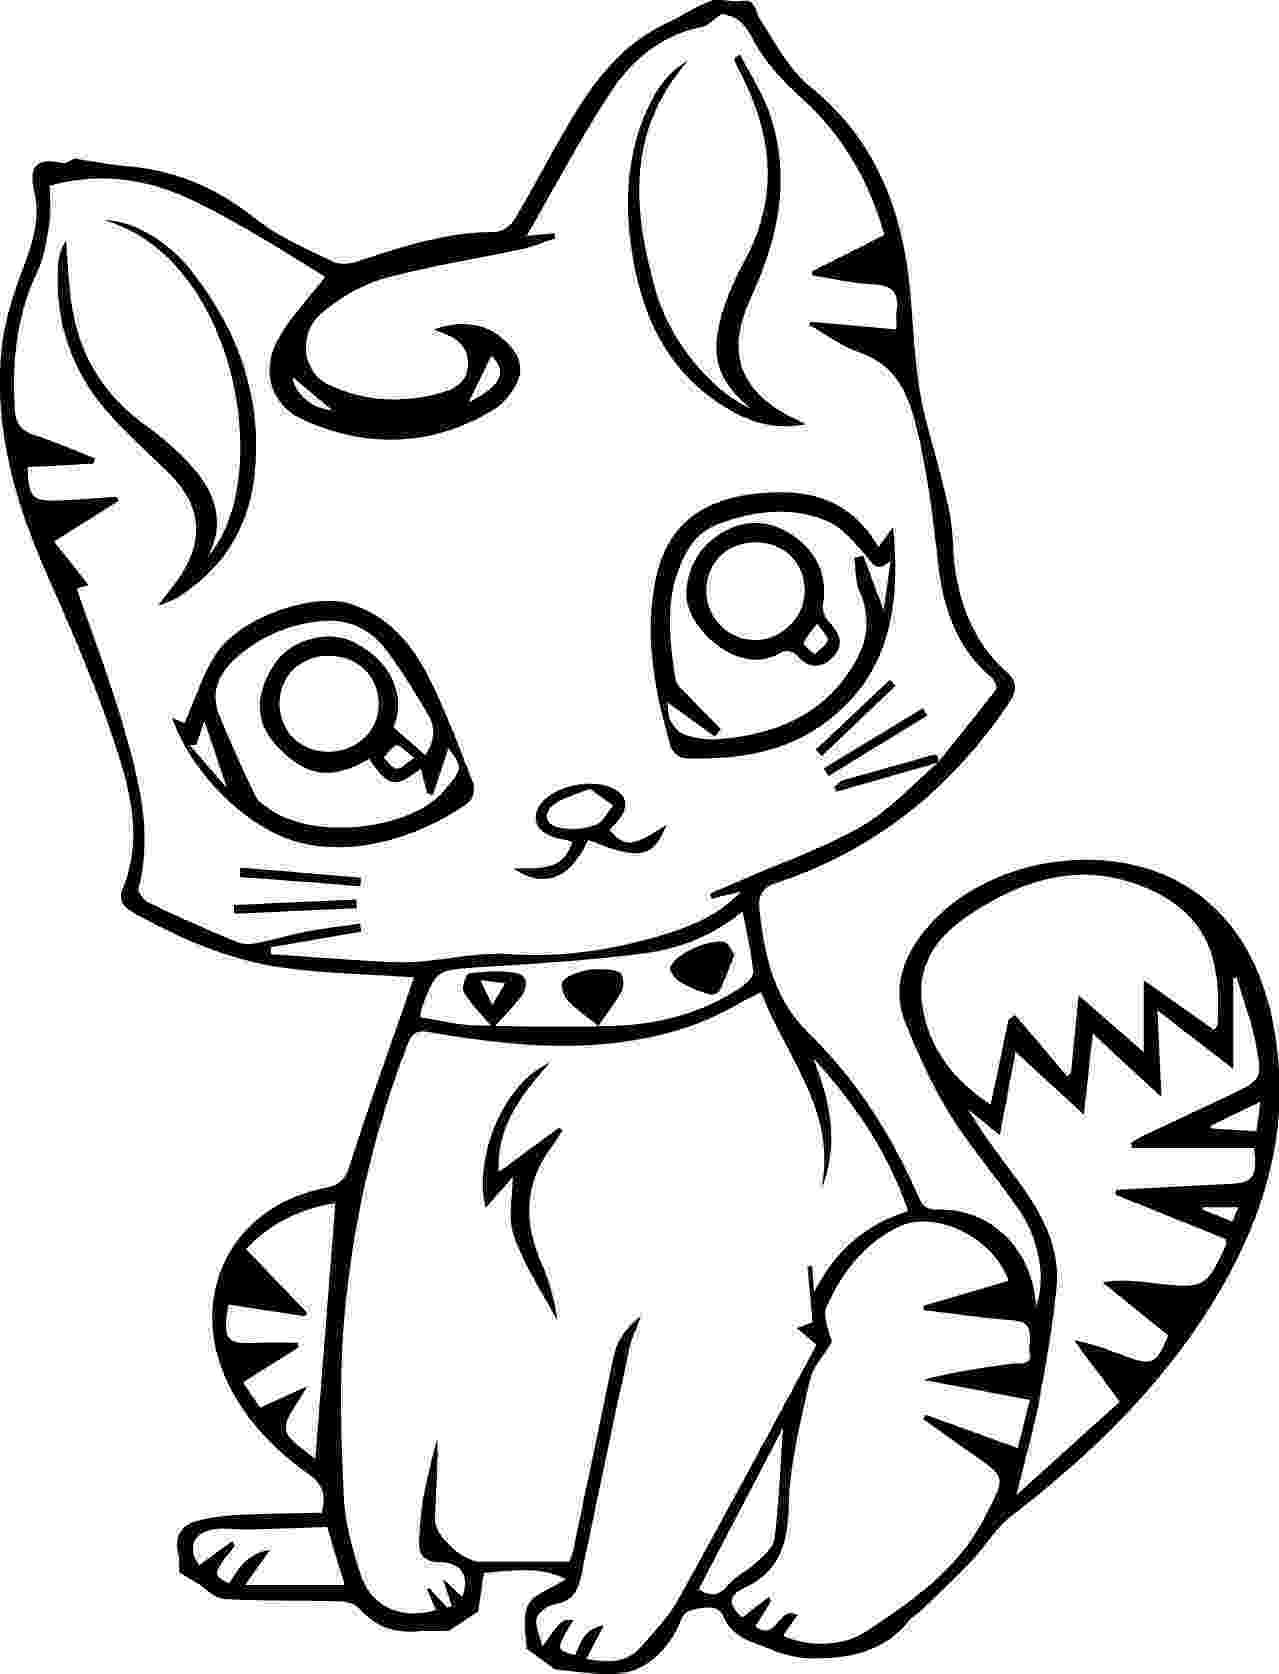 cat coloring pages free printable cat coloring pages at getcoloringscom free printable coloring pages free cat printable